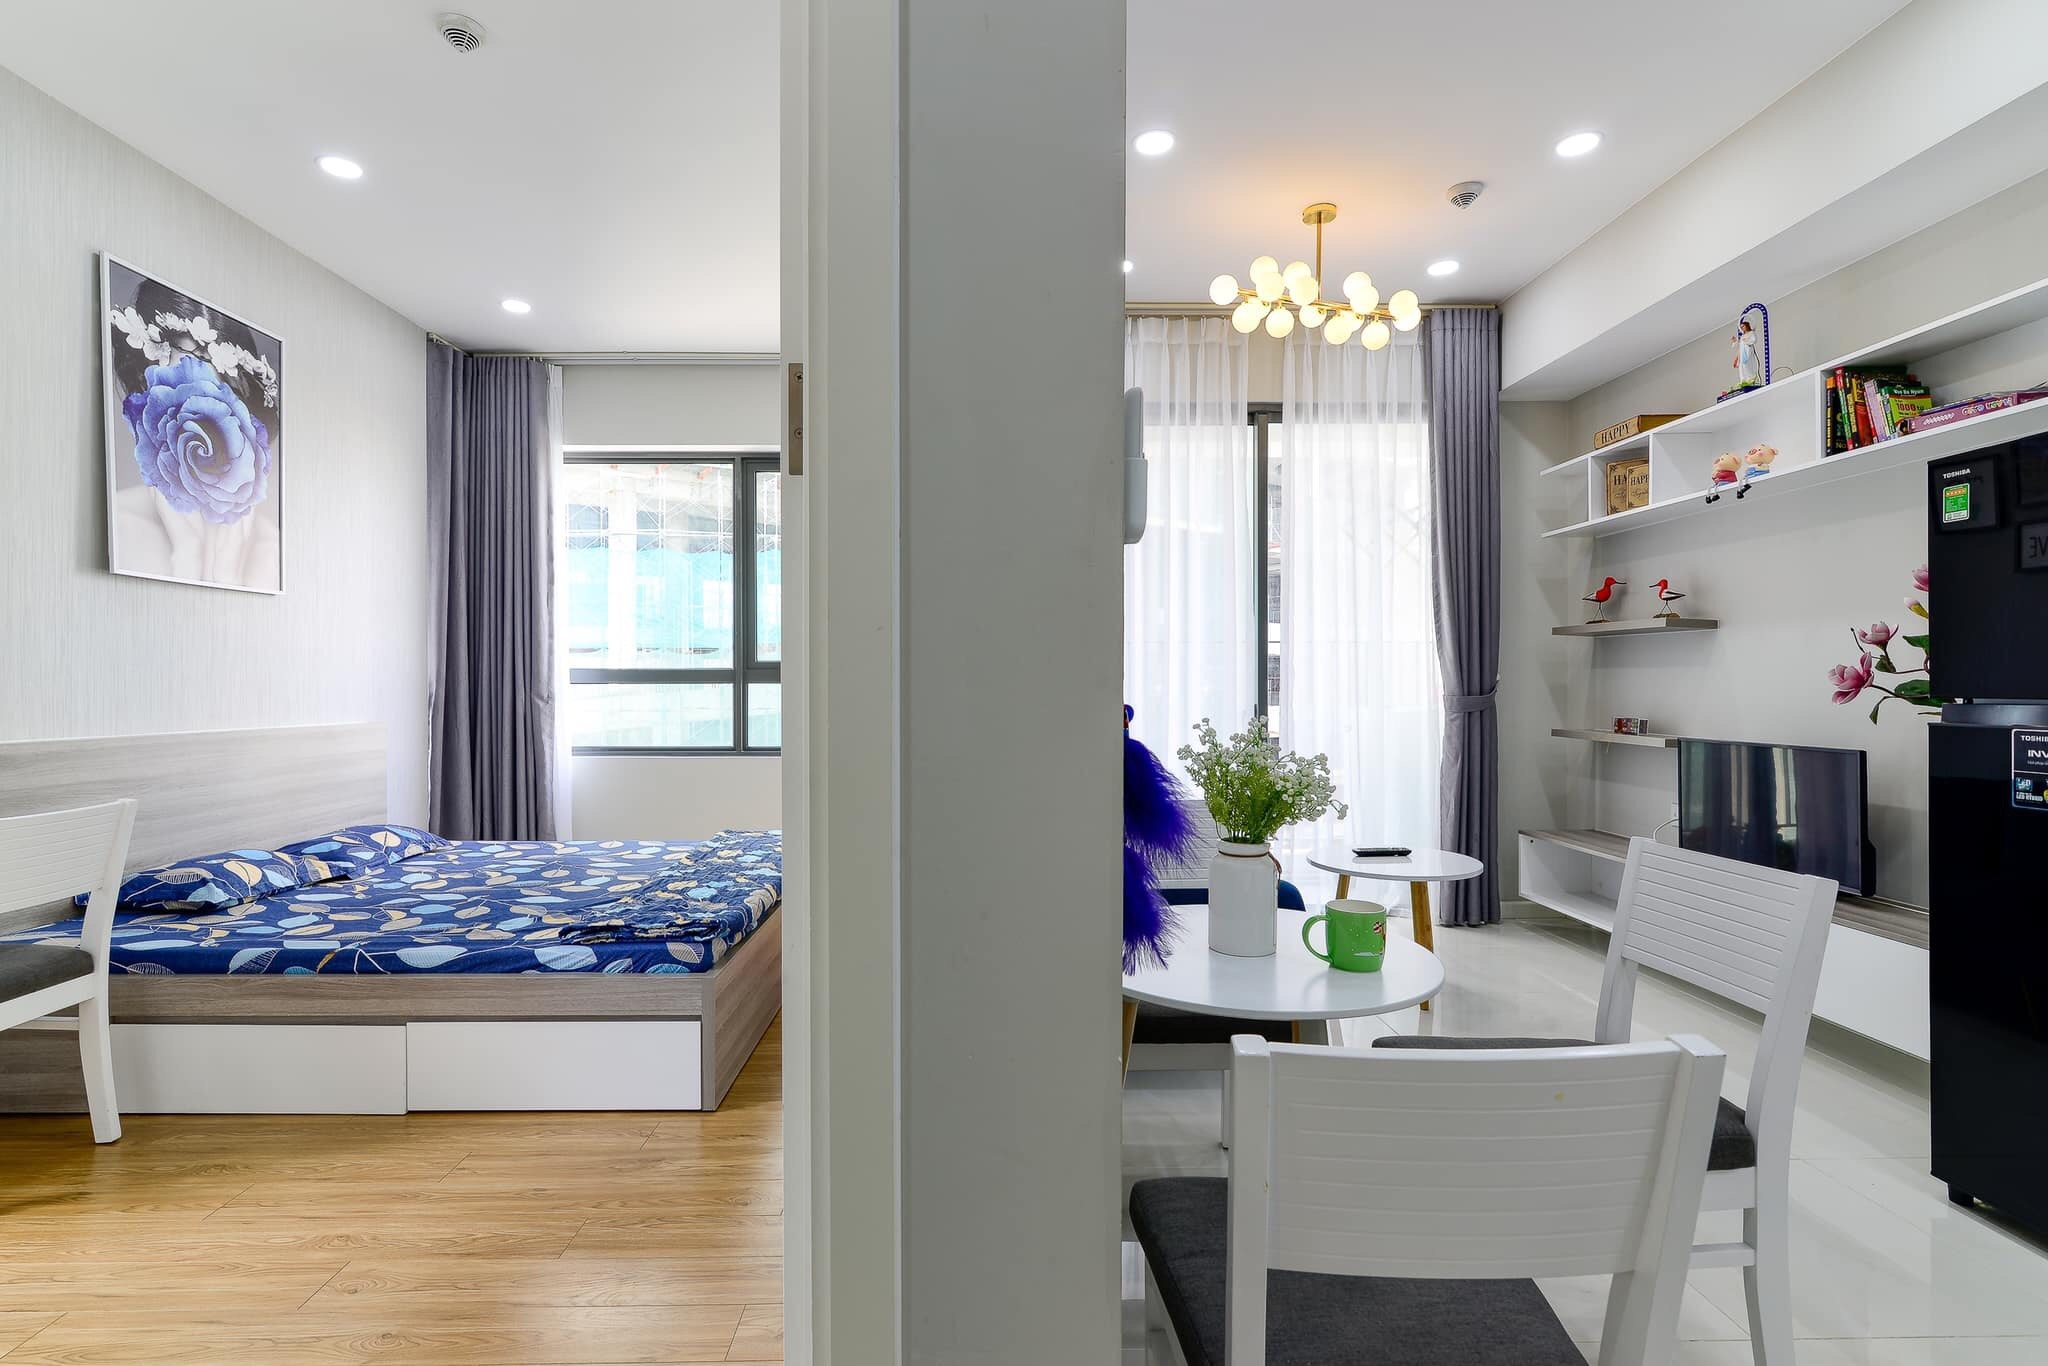 D229004 - Apartment for rent - Masteri An Phu - 1 bedroom